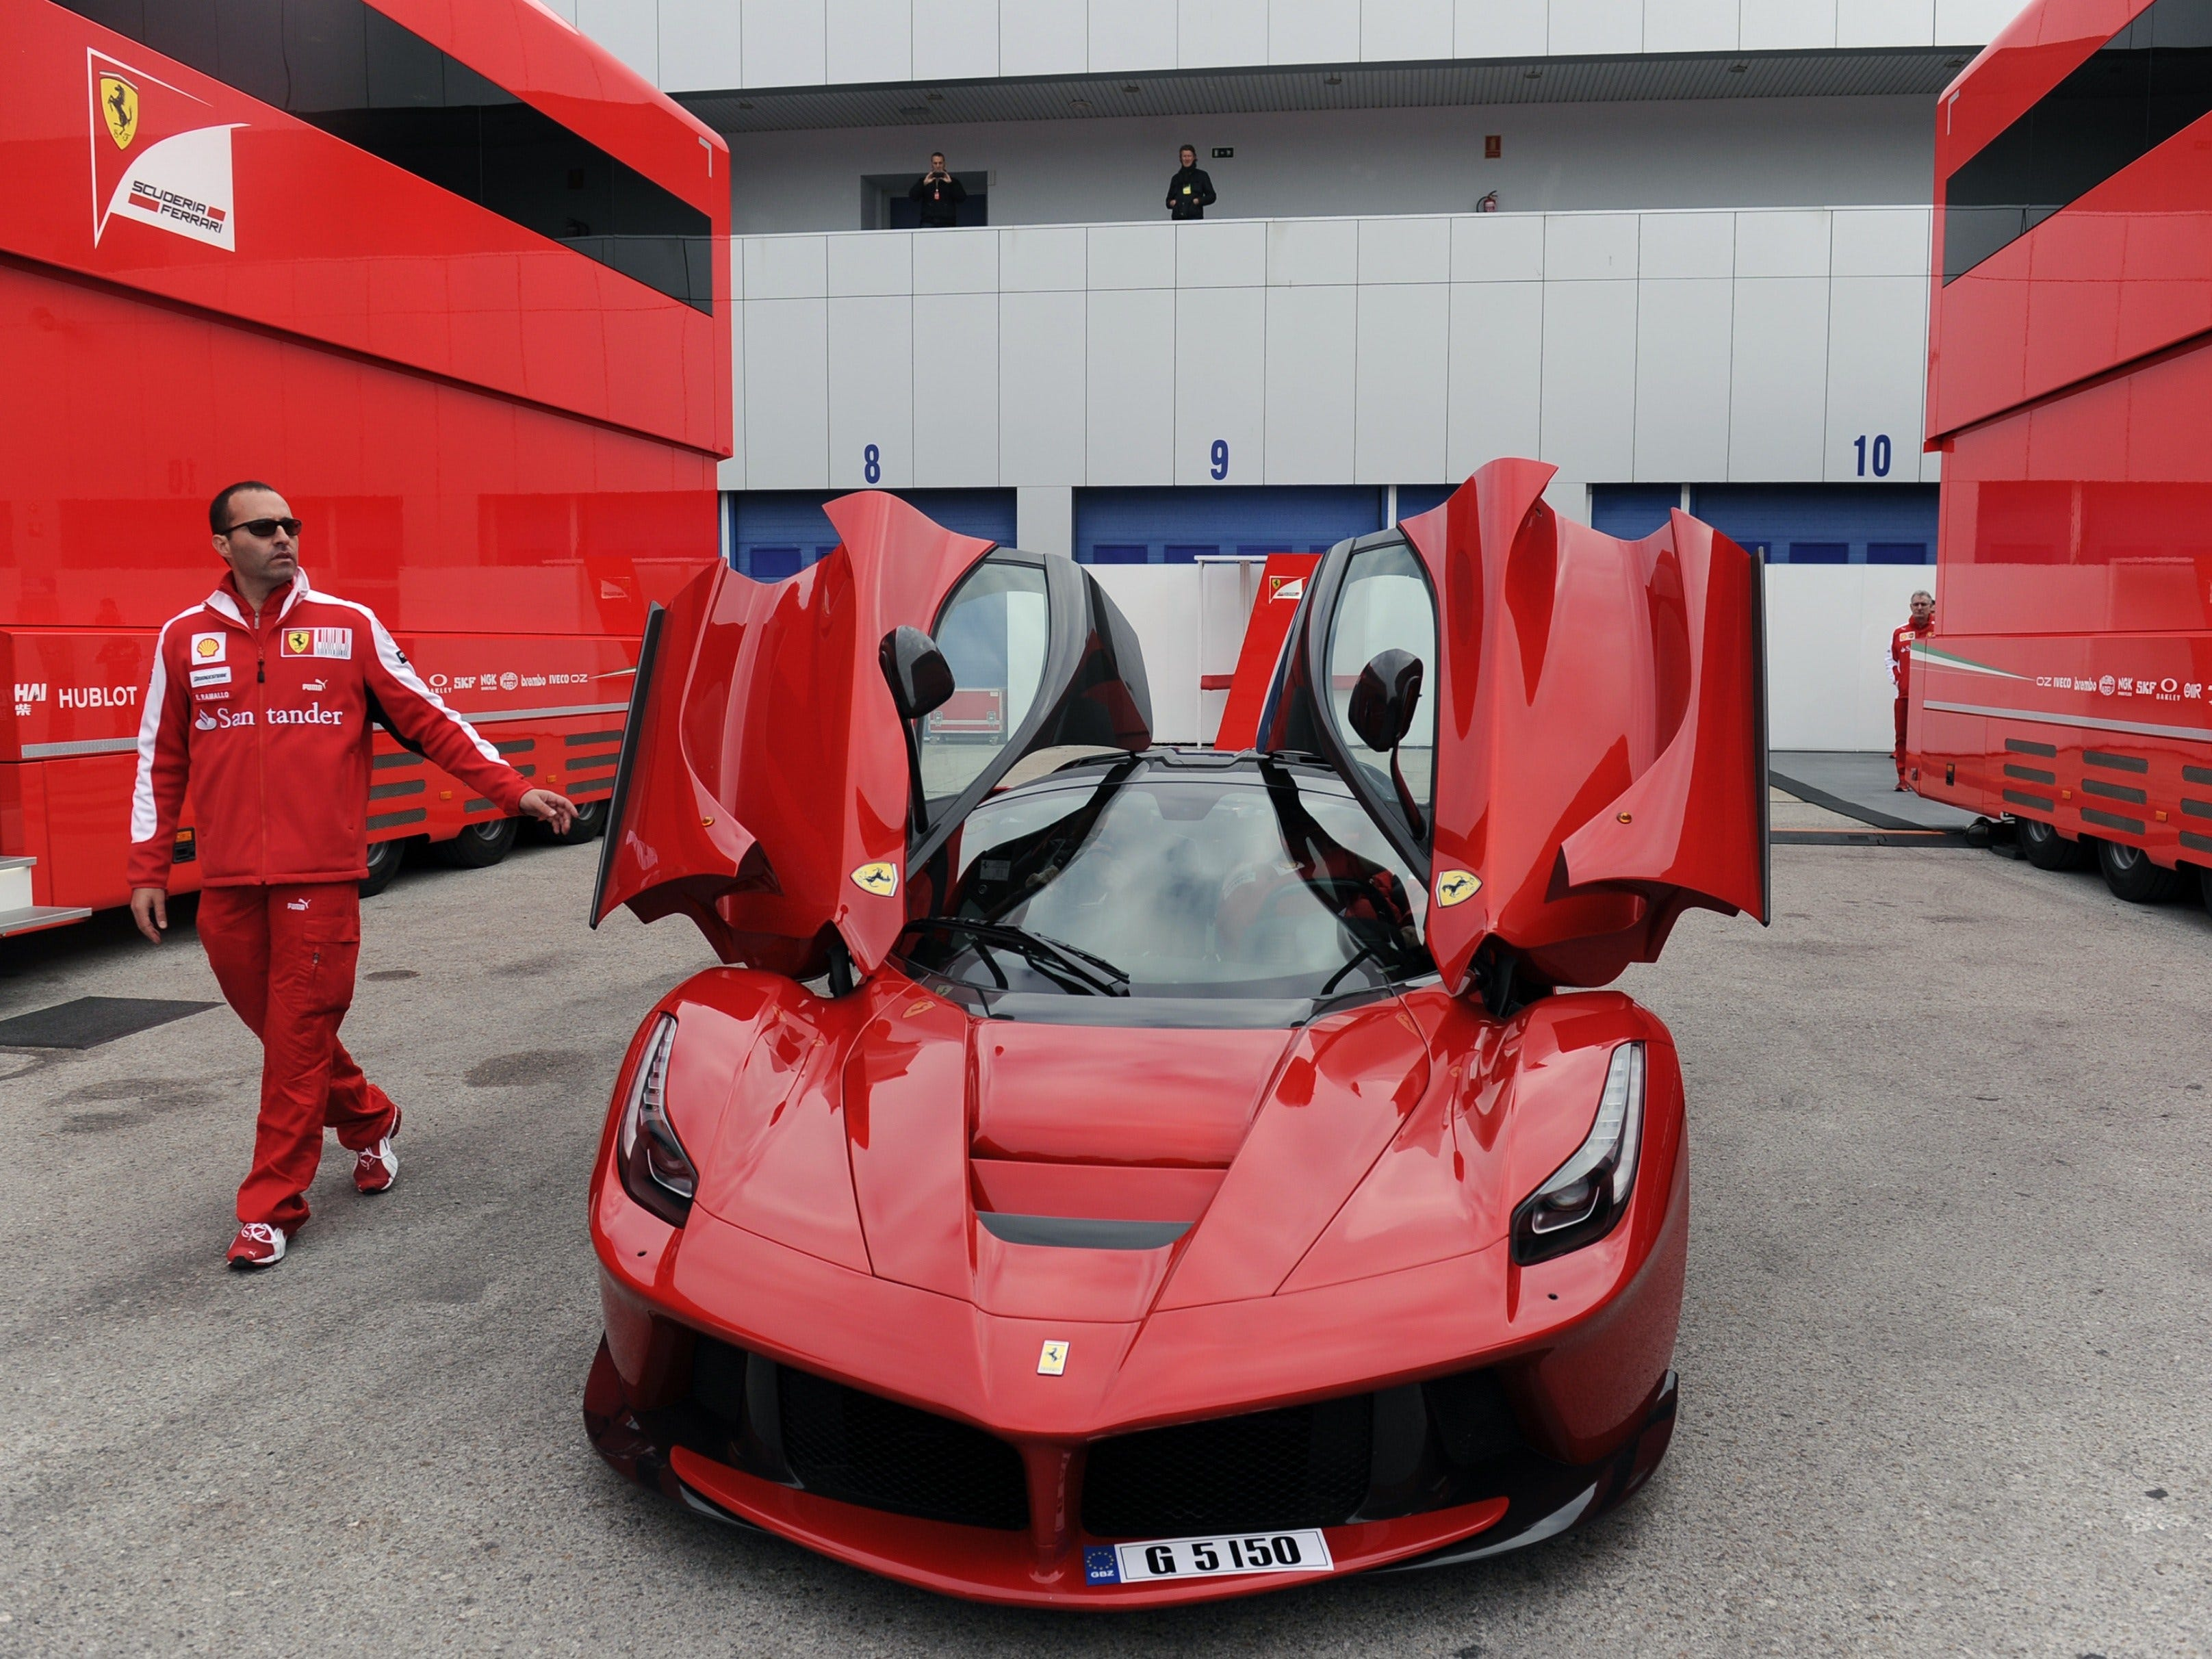 A LaFerrari limited production hybrid sports is parked in the paddock during the Formula One pre-season tests at Jerez racetrack in Jerez,Spain on Feb. 2, 2015.